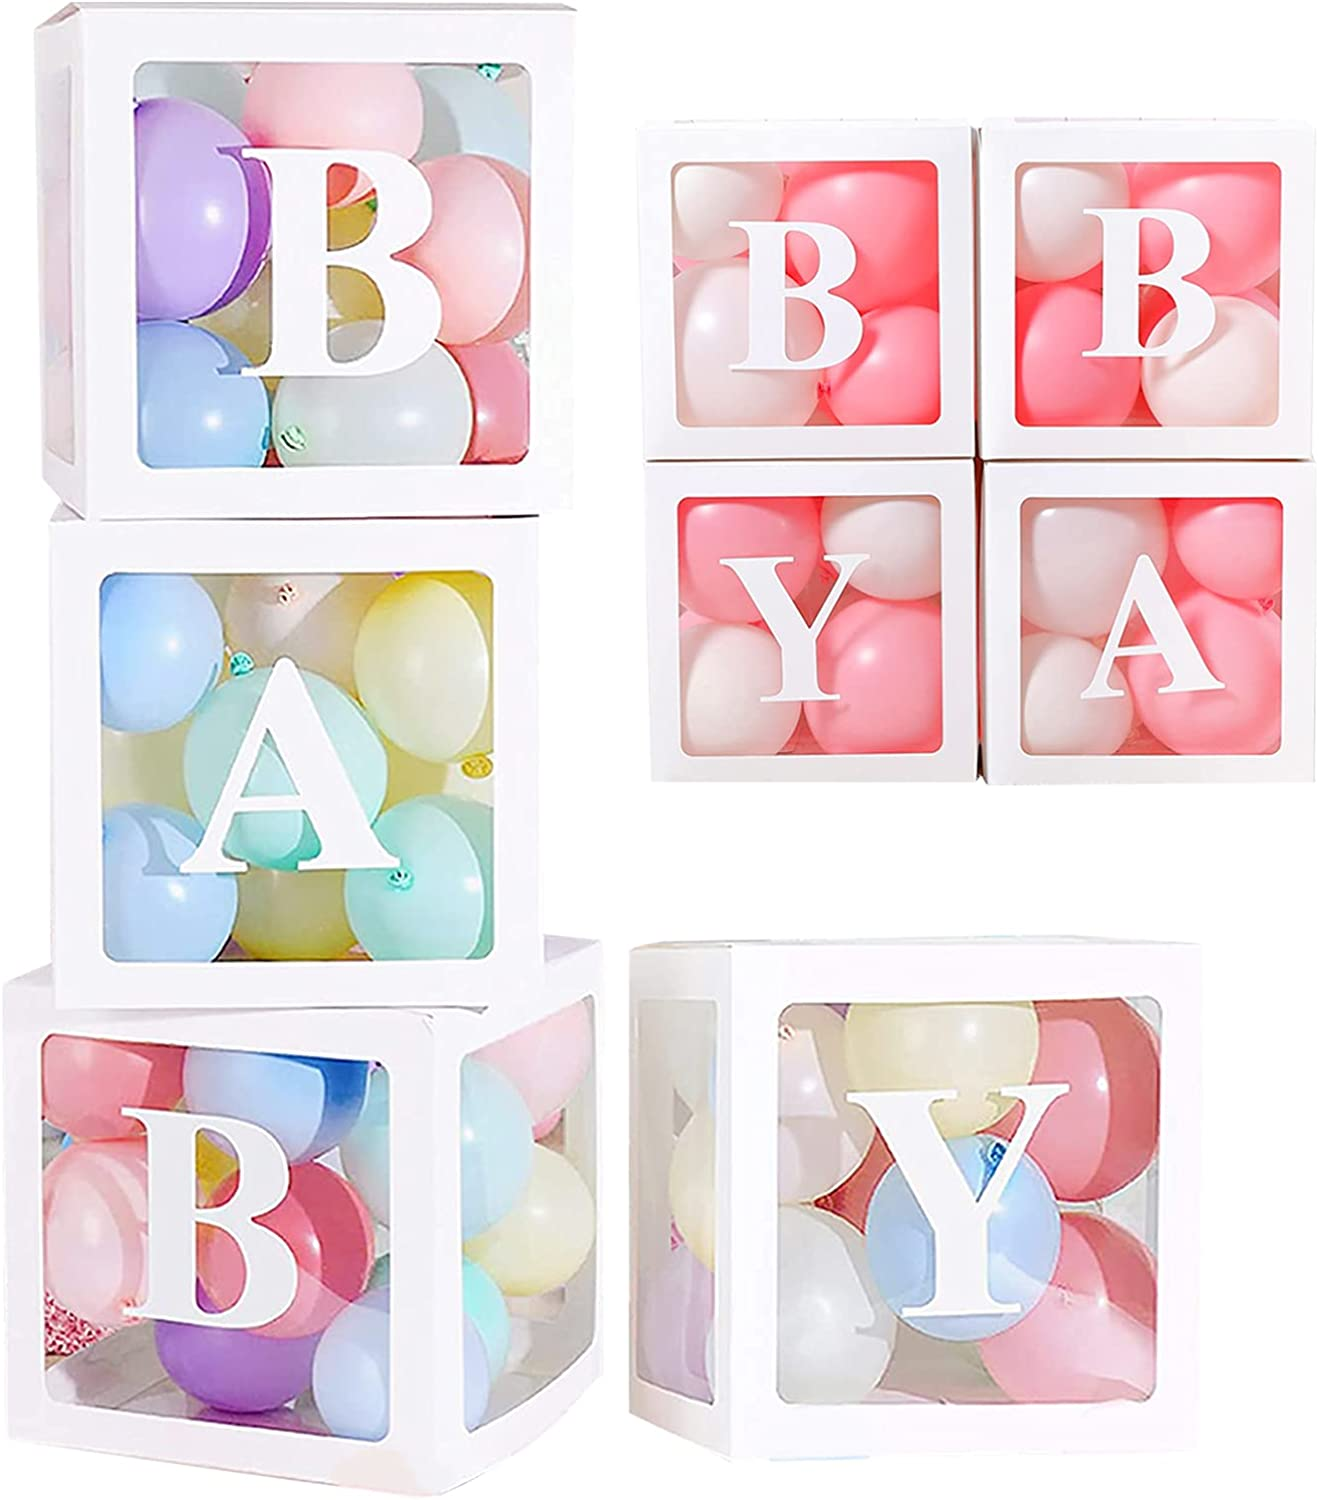 Hirsrian Balloon Box Set of 4 with Letters, Baby Shower Boxes Birthday Decor, Block Boxes Party Supplies for Baby Girls Boy Kids